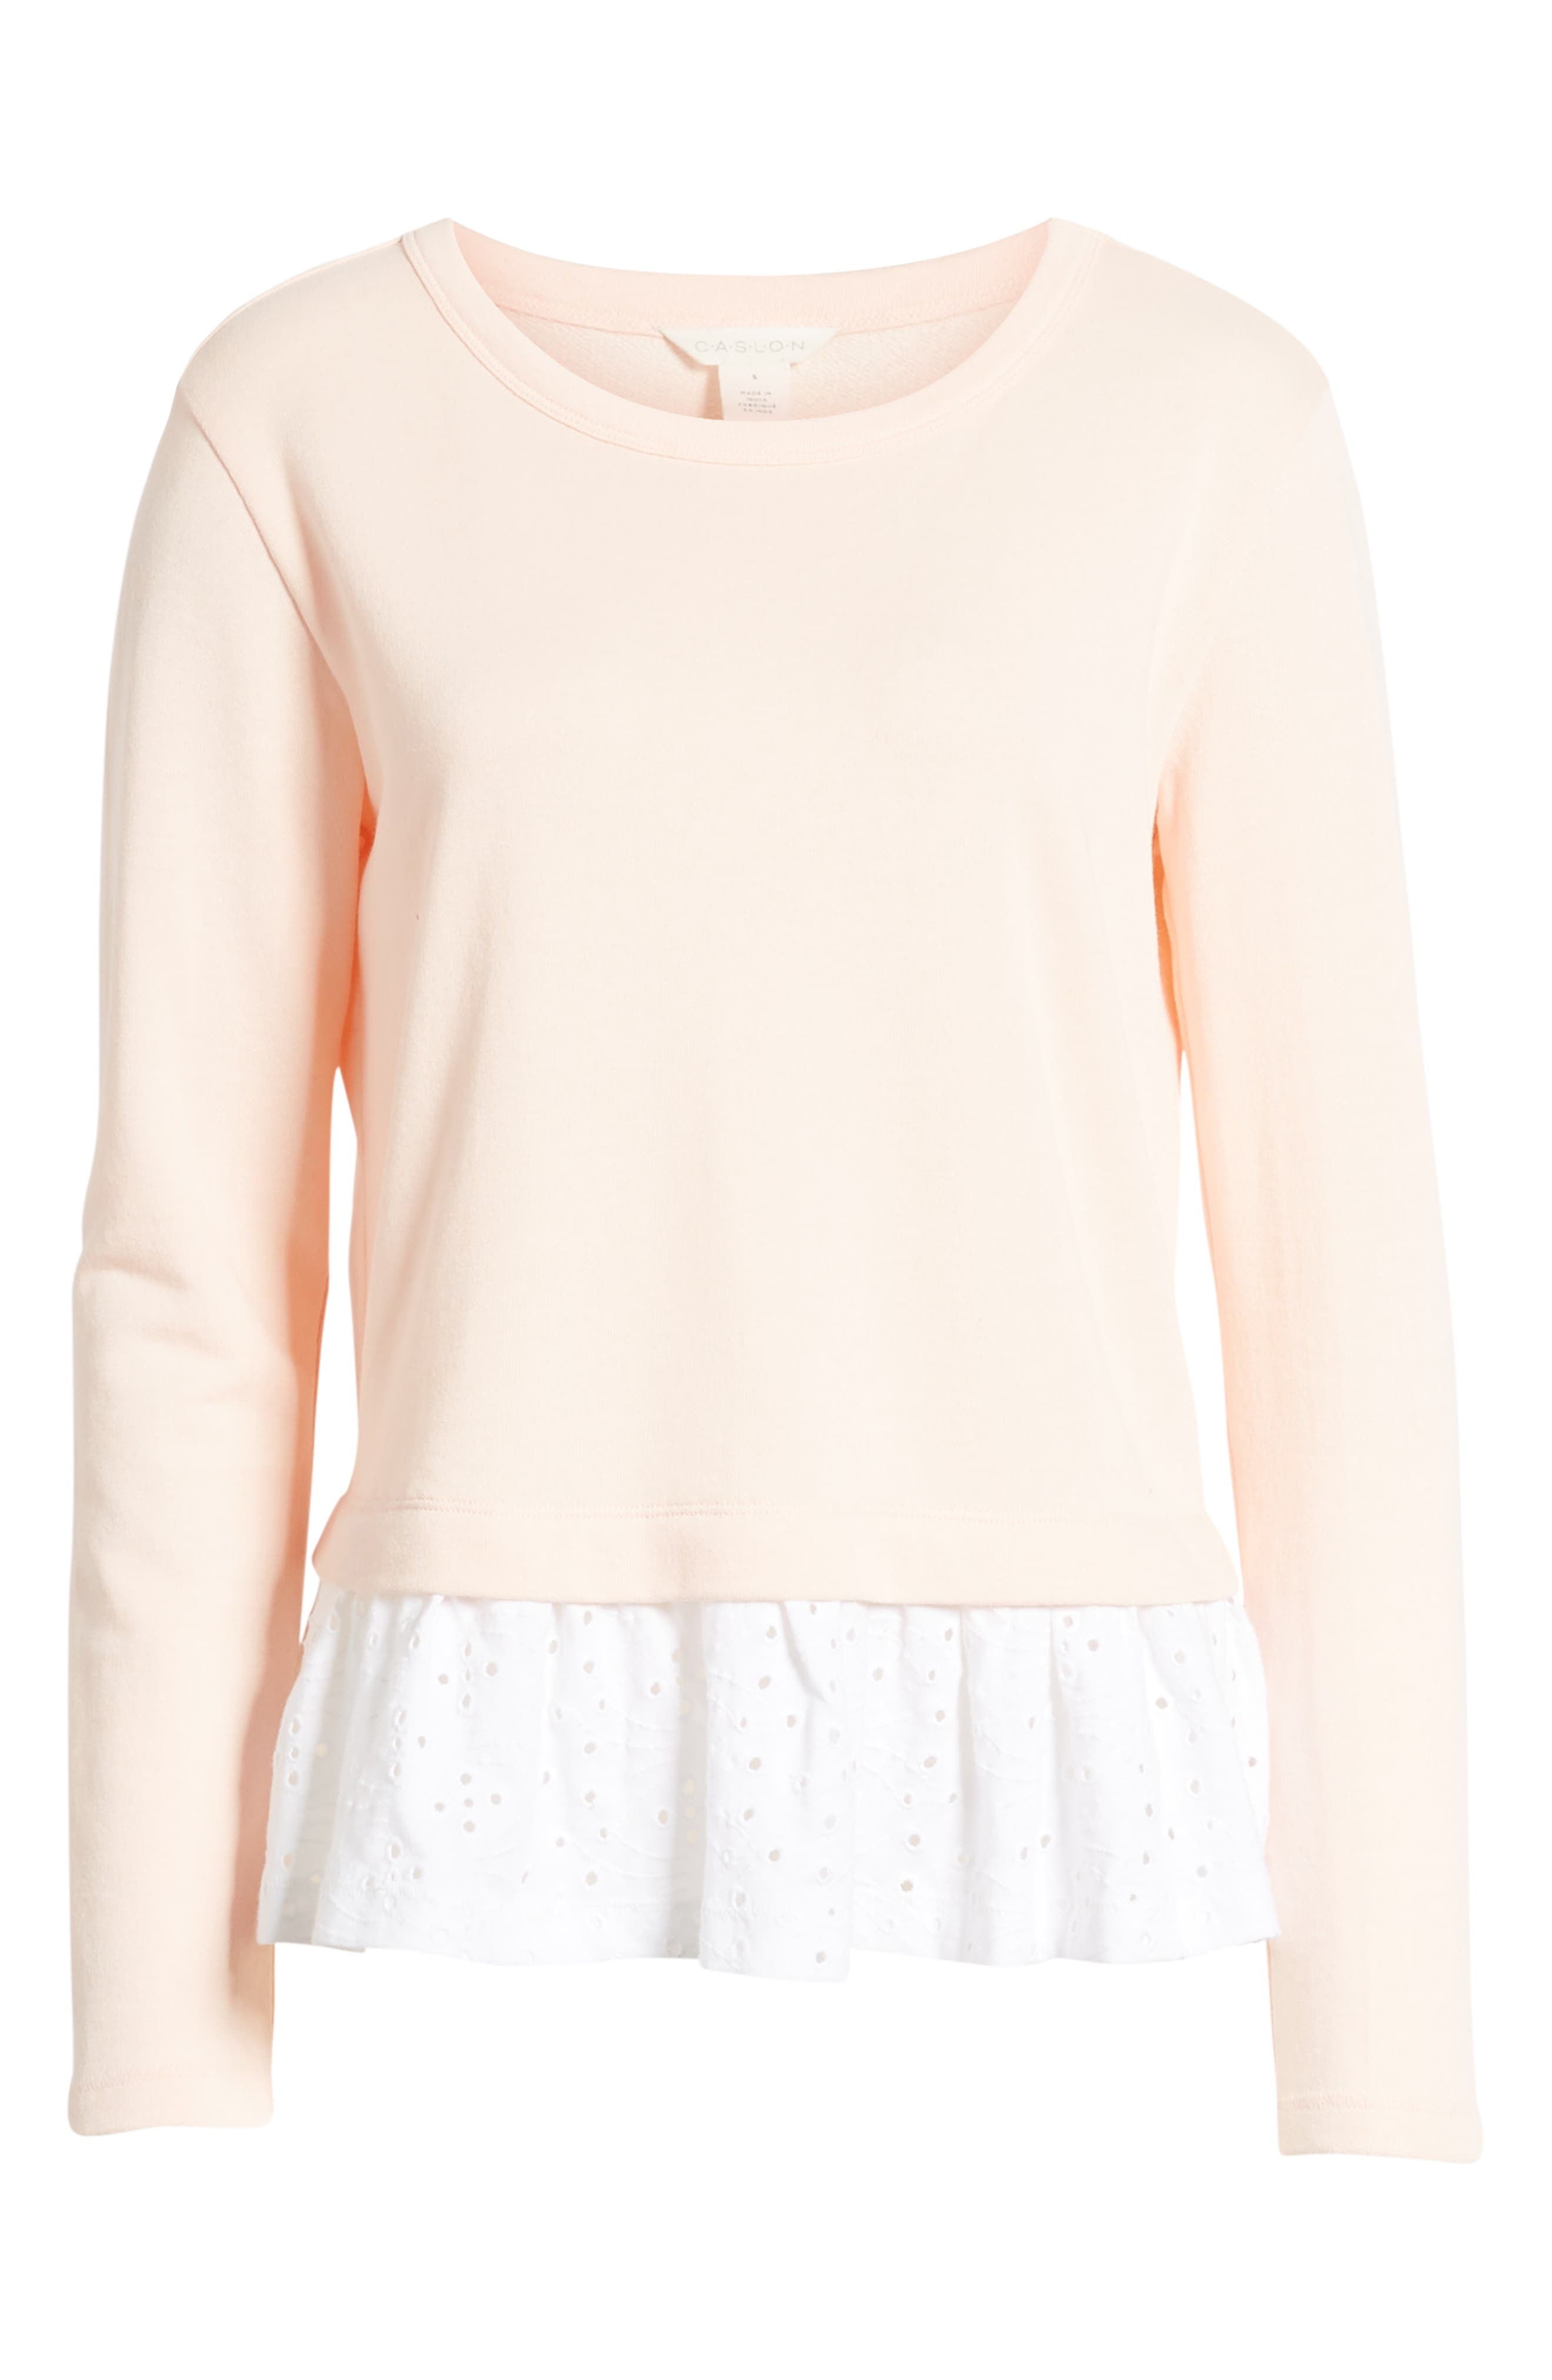 CASLON<SUP>®</SUP>, Eyelet Peplum Sweatshirt, Alternate thumbnail 6, color, PINK- WHITE